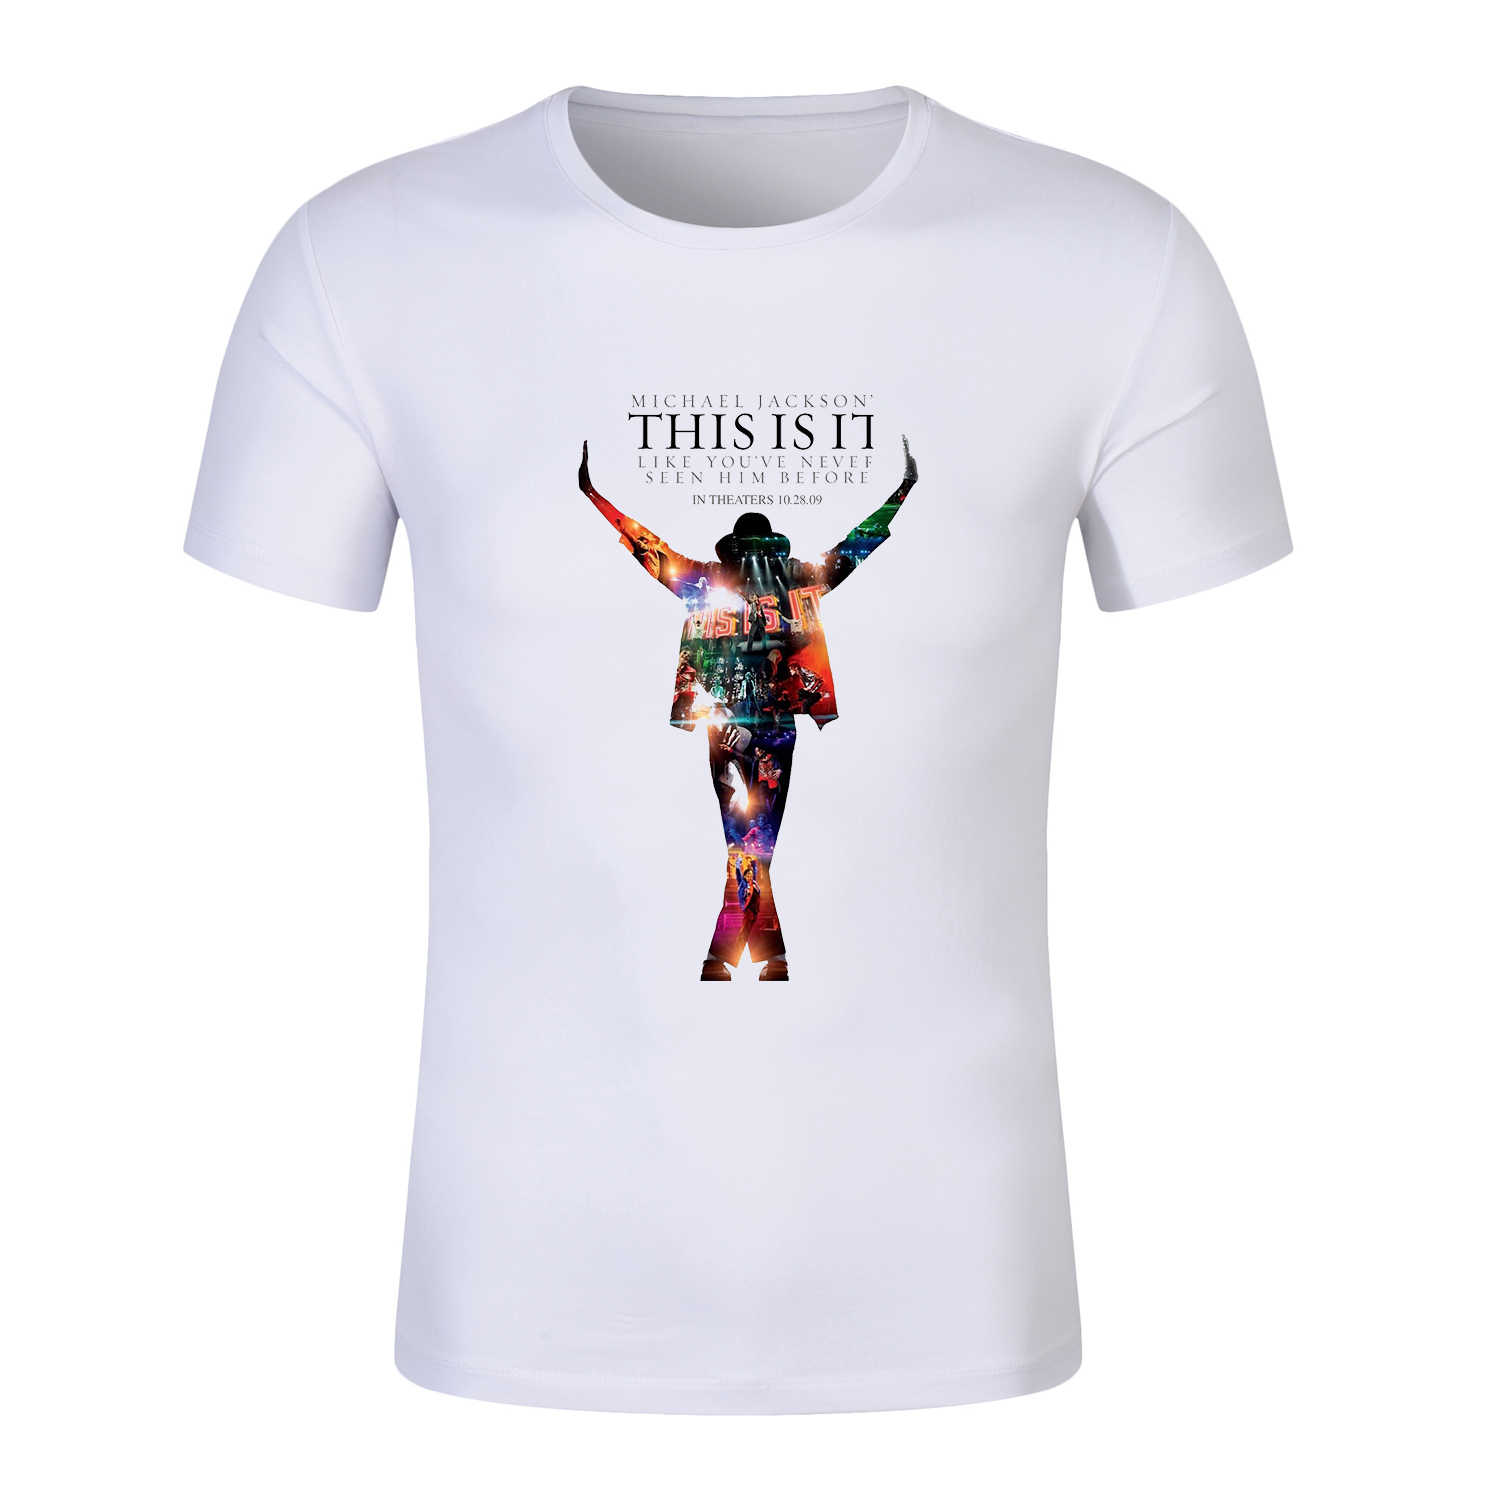 Michael Jackson Tshirt THIS IS IT Print T-shirt Unisex T Shirt Modal casual Men And Women tshirt Death 10th Anniversary Tees top